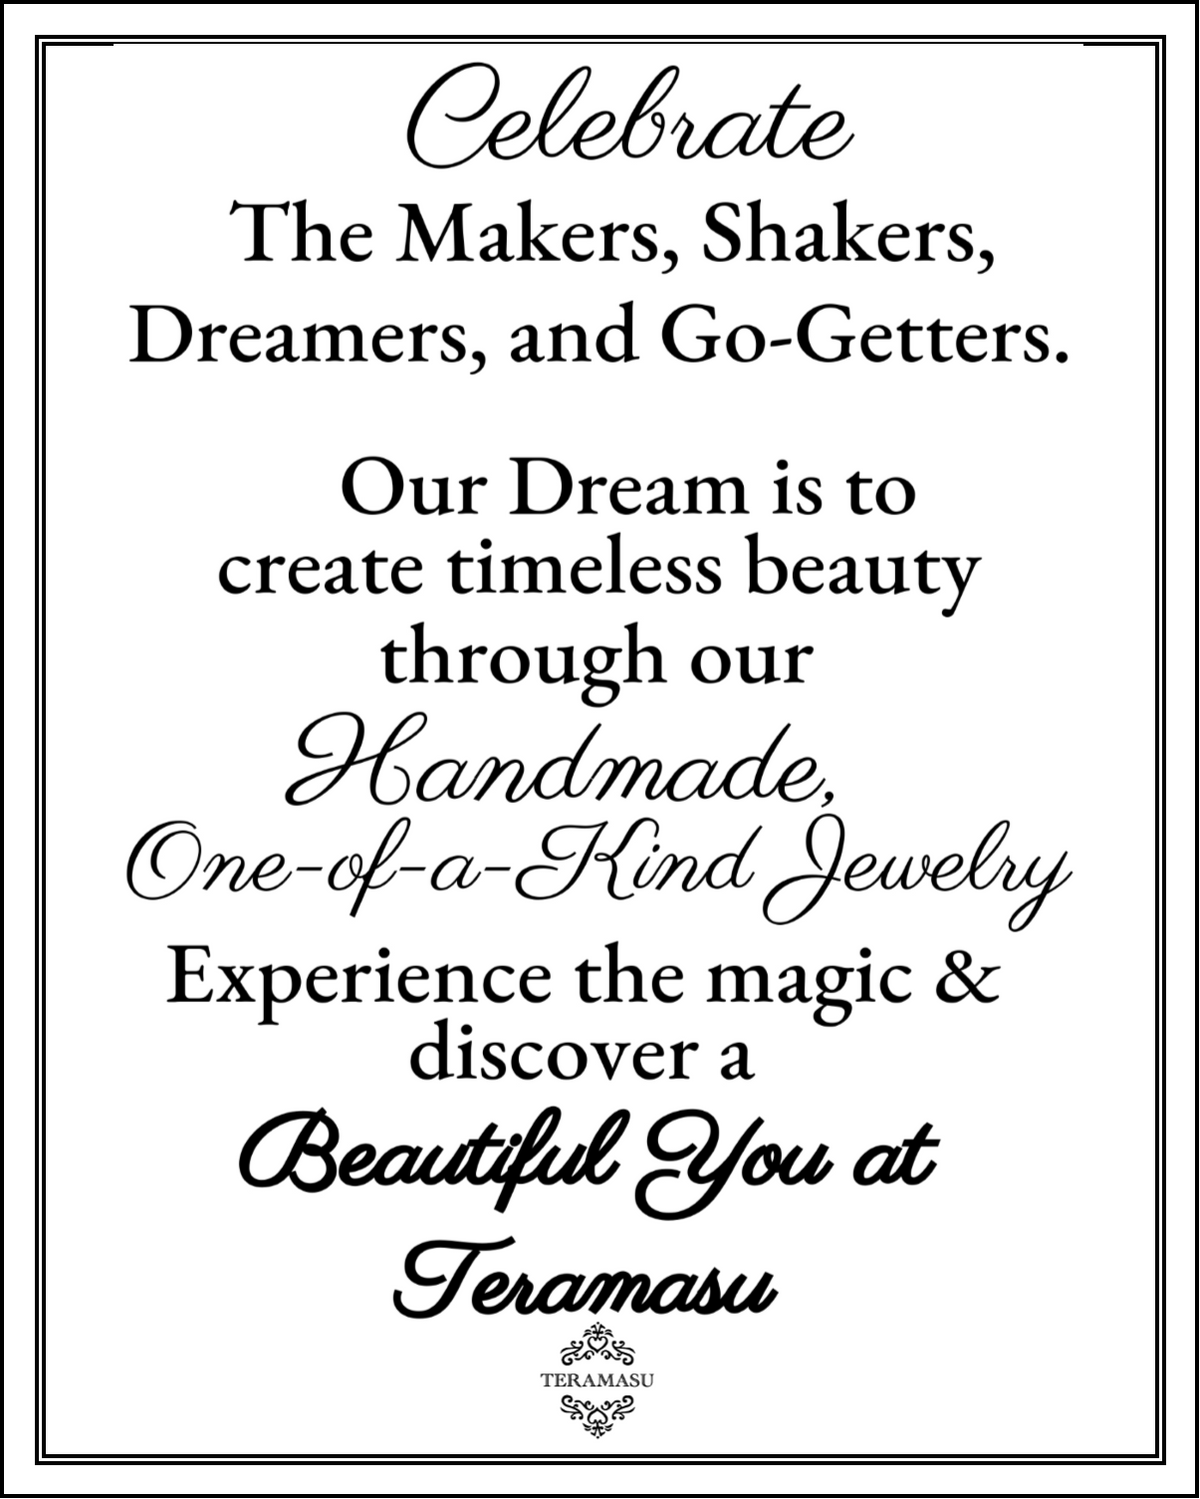 Wednesday Wisdom: Celebrate the Makers & Discover a Beautiful You at Teramasu!